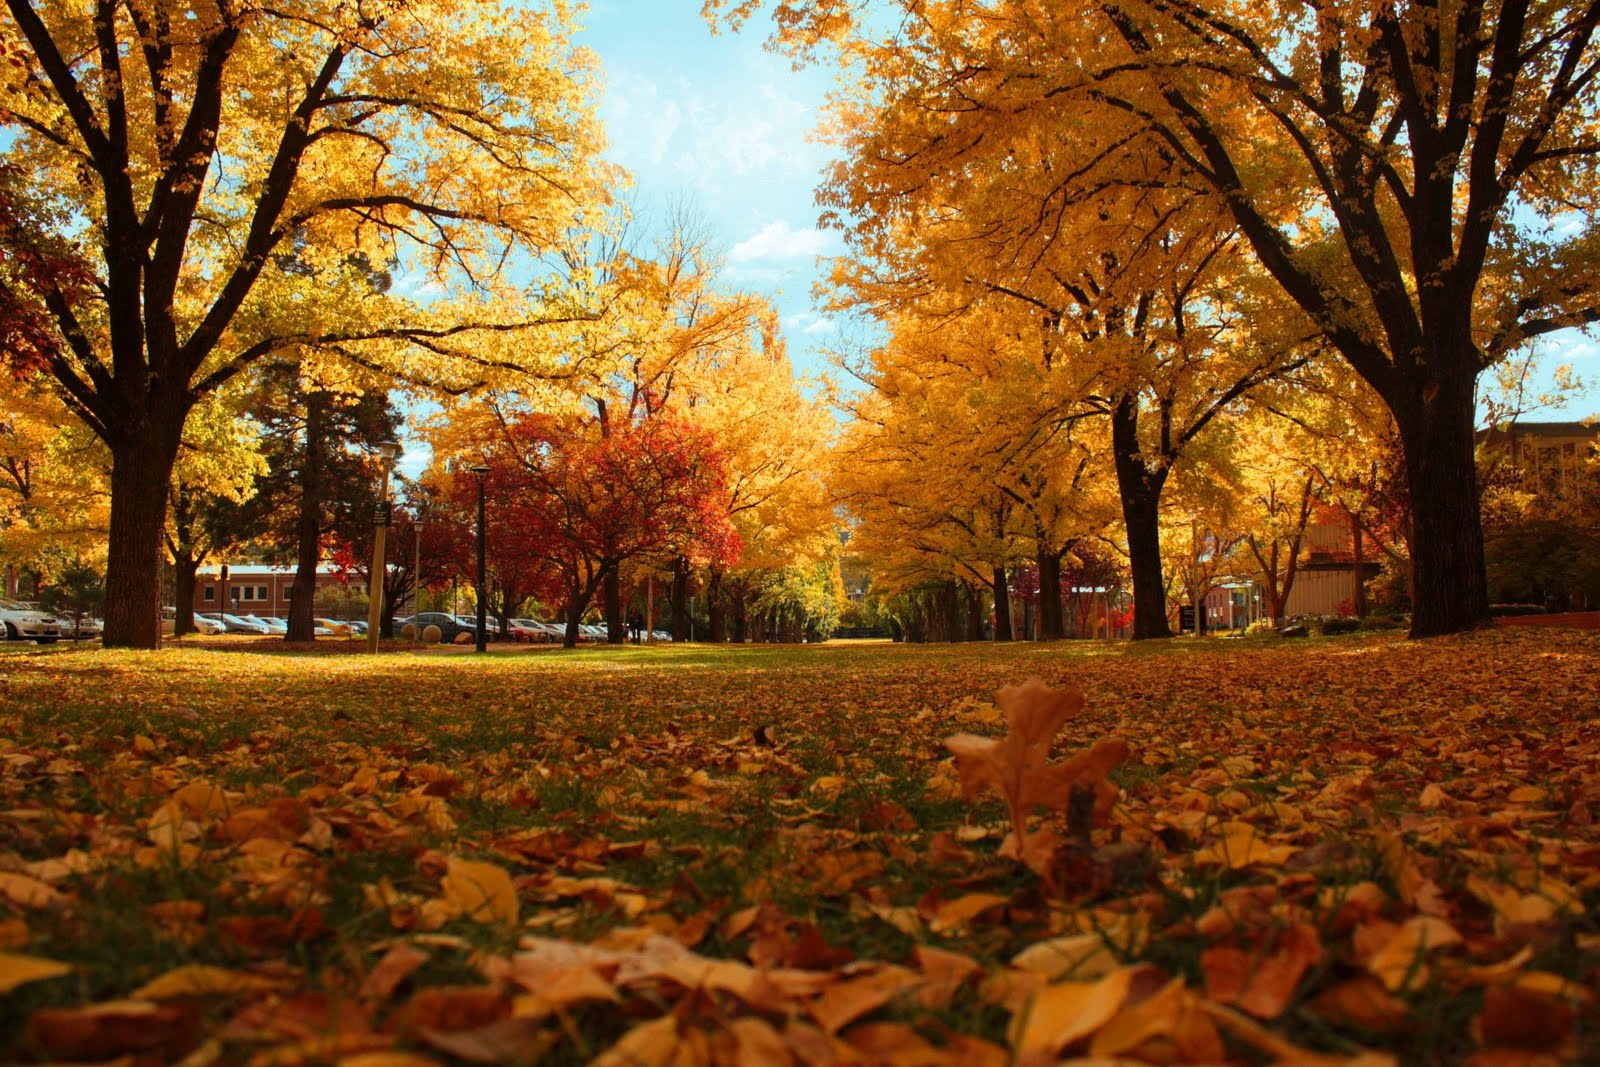 Getting Your Car Ready For Fall Winter